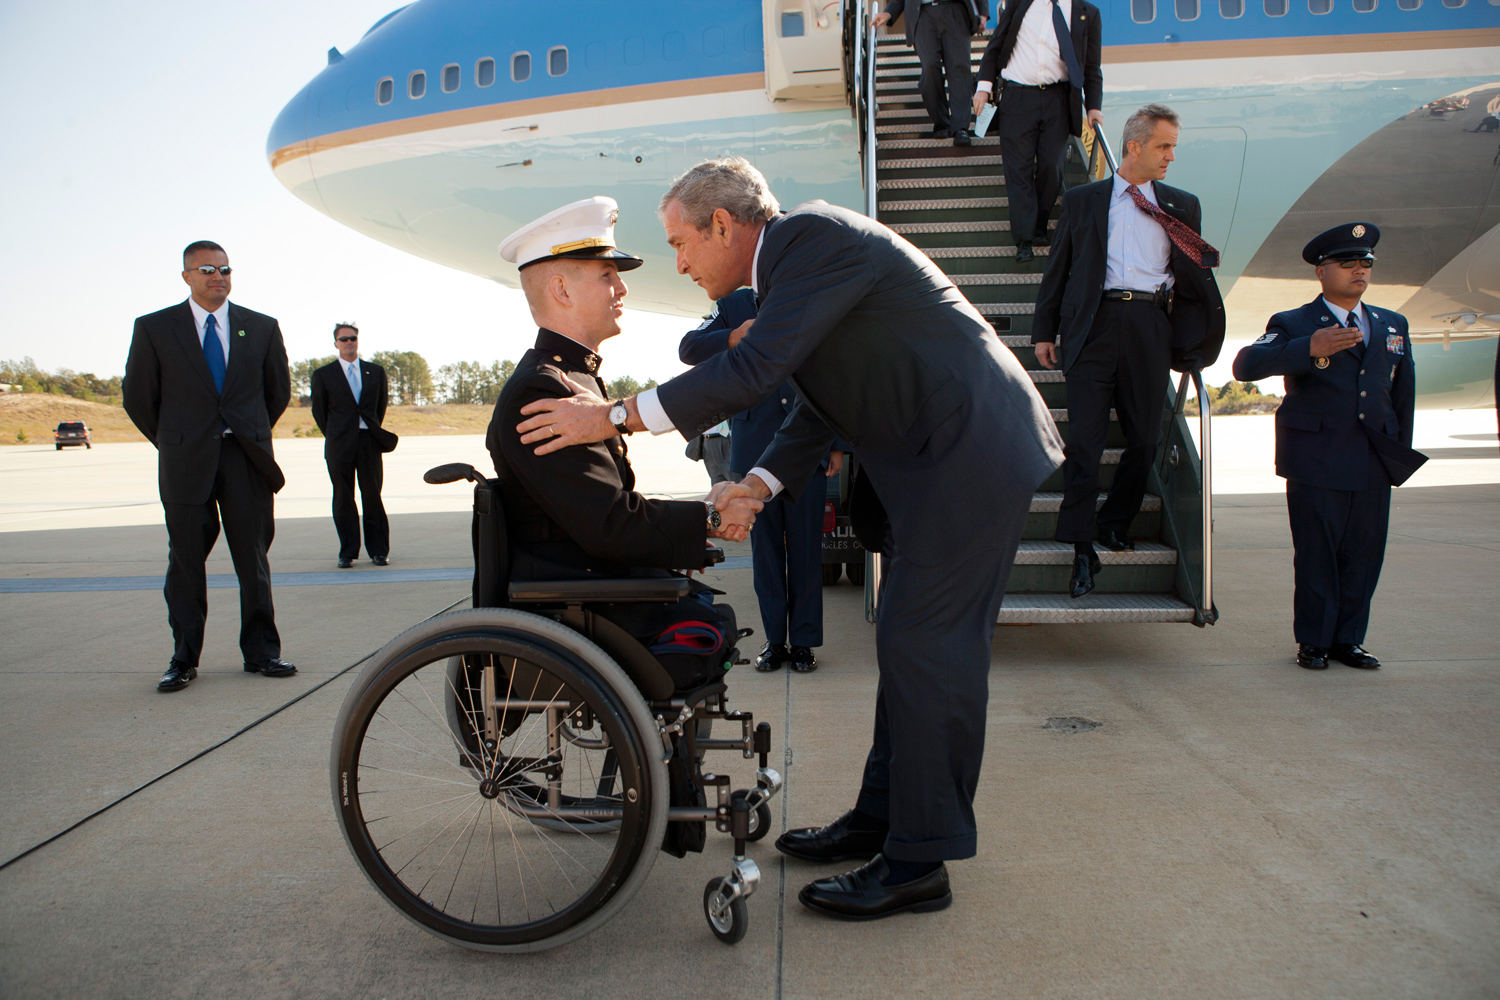 Nov. 2, 2007. President Bush greets Marine Corps Lieutenant Andrew Kinard, a twenty-four-year-old from Spartanburg, South Carolina, after arriving at Columbia Metropolitan Airport. Lieutenant Kinard was wounded in 2006 while serving in Iraq.